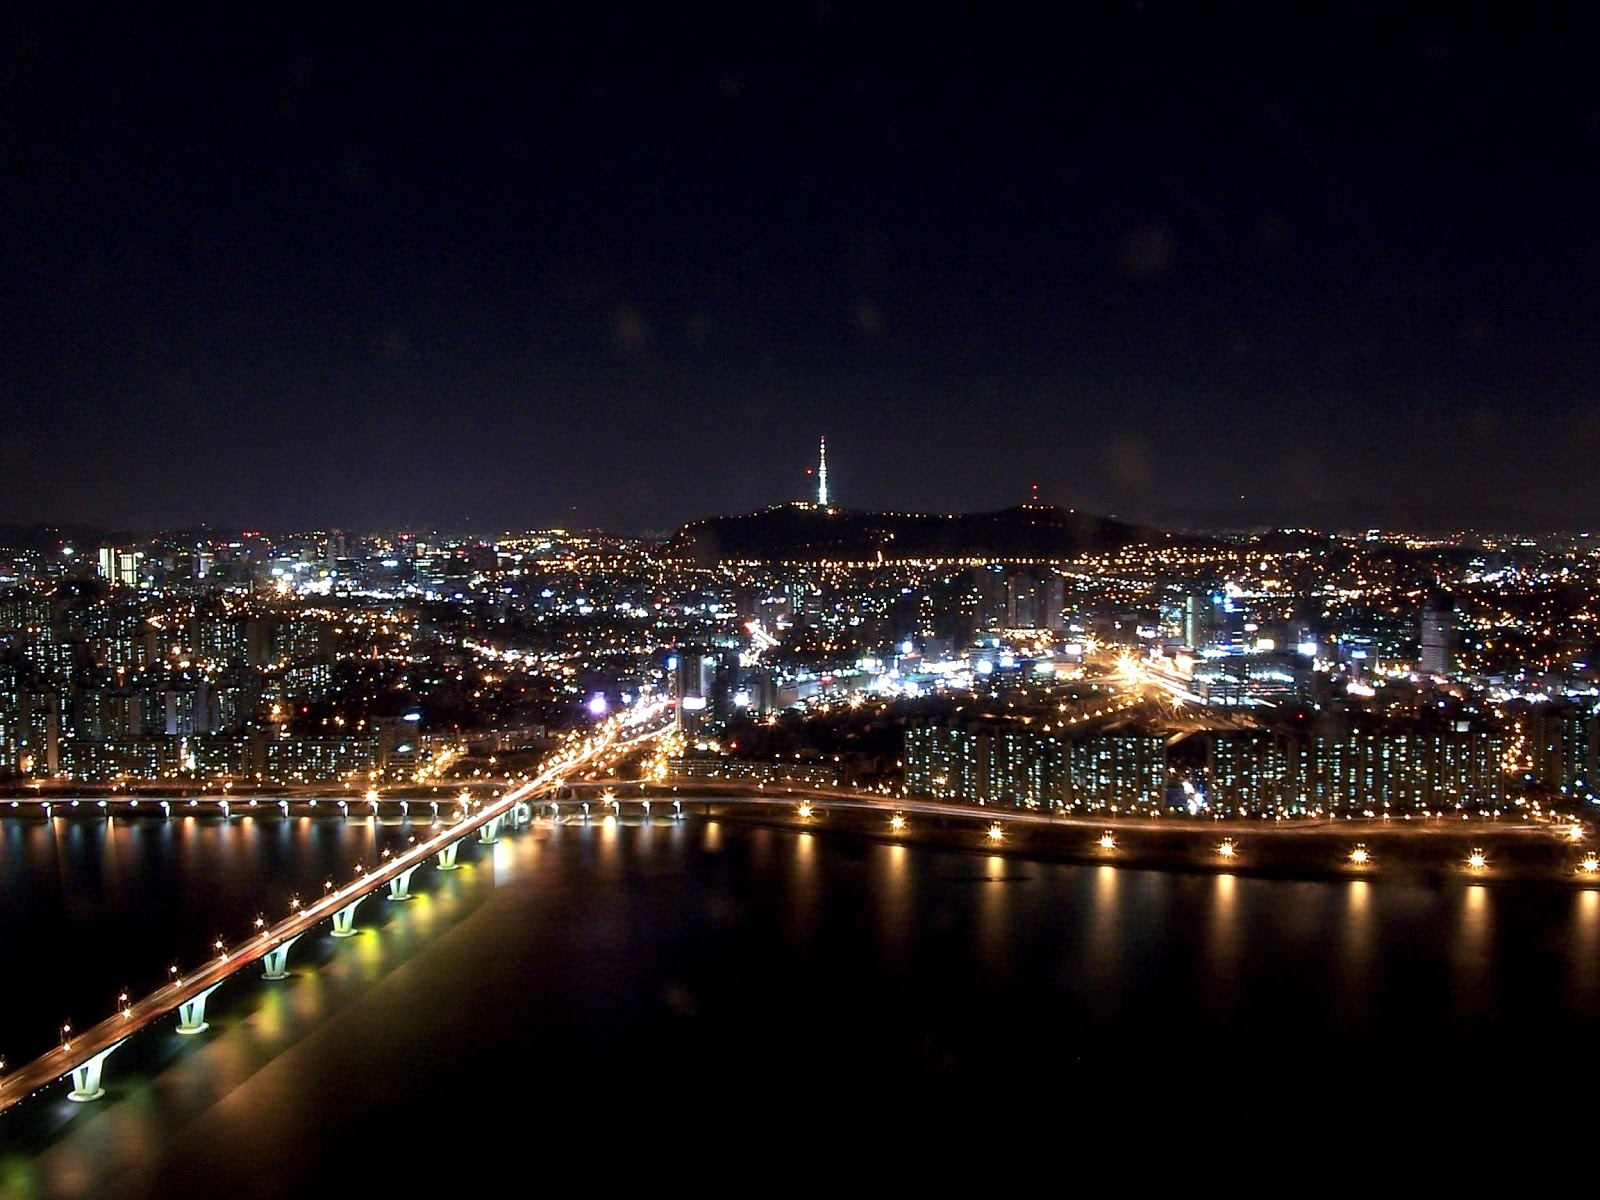 http://1.bp.blogspot.com/-A8mfhAnIxhs/UWeYGkJeEFI/AAAAAAAAAAo/VsF4q4nVqWg/s1600/Seoul_at_night_from_63_building.jpg